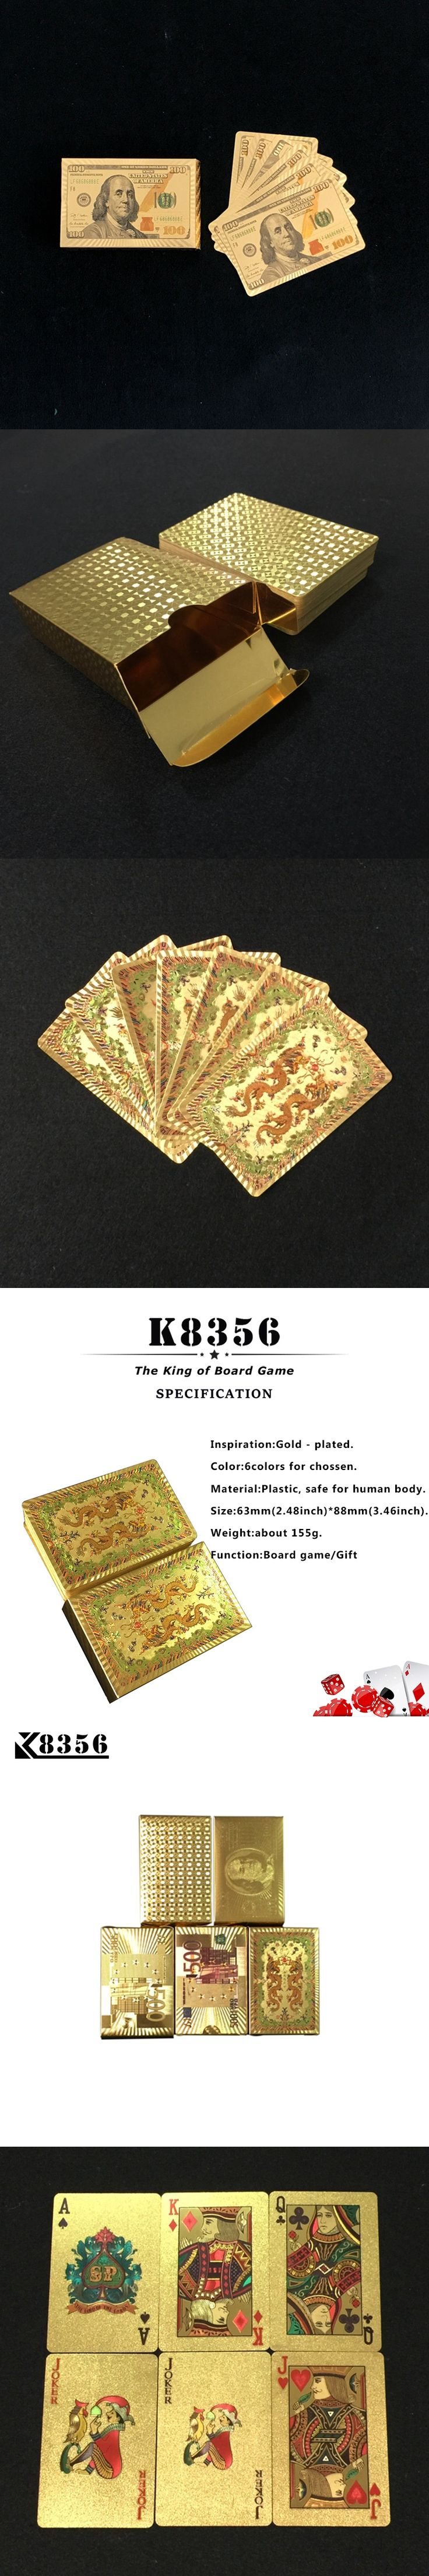 K8356 10Sets/Lot Gold Foil Plated Texas Hold'em Plastic Playing Cards Waterproof Poker Cards Board Game 2.48*3.46 inch Wholesale